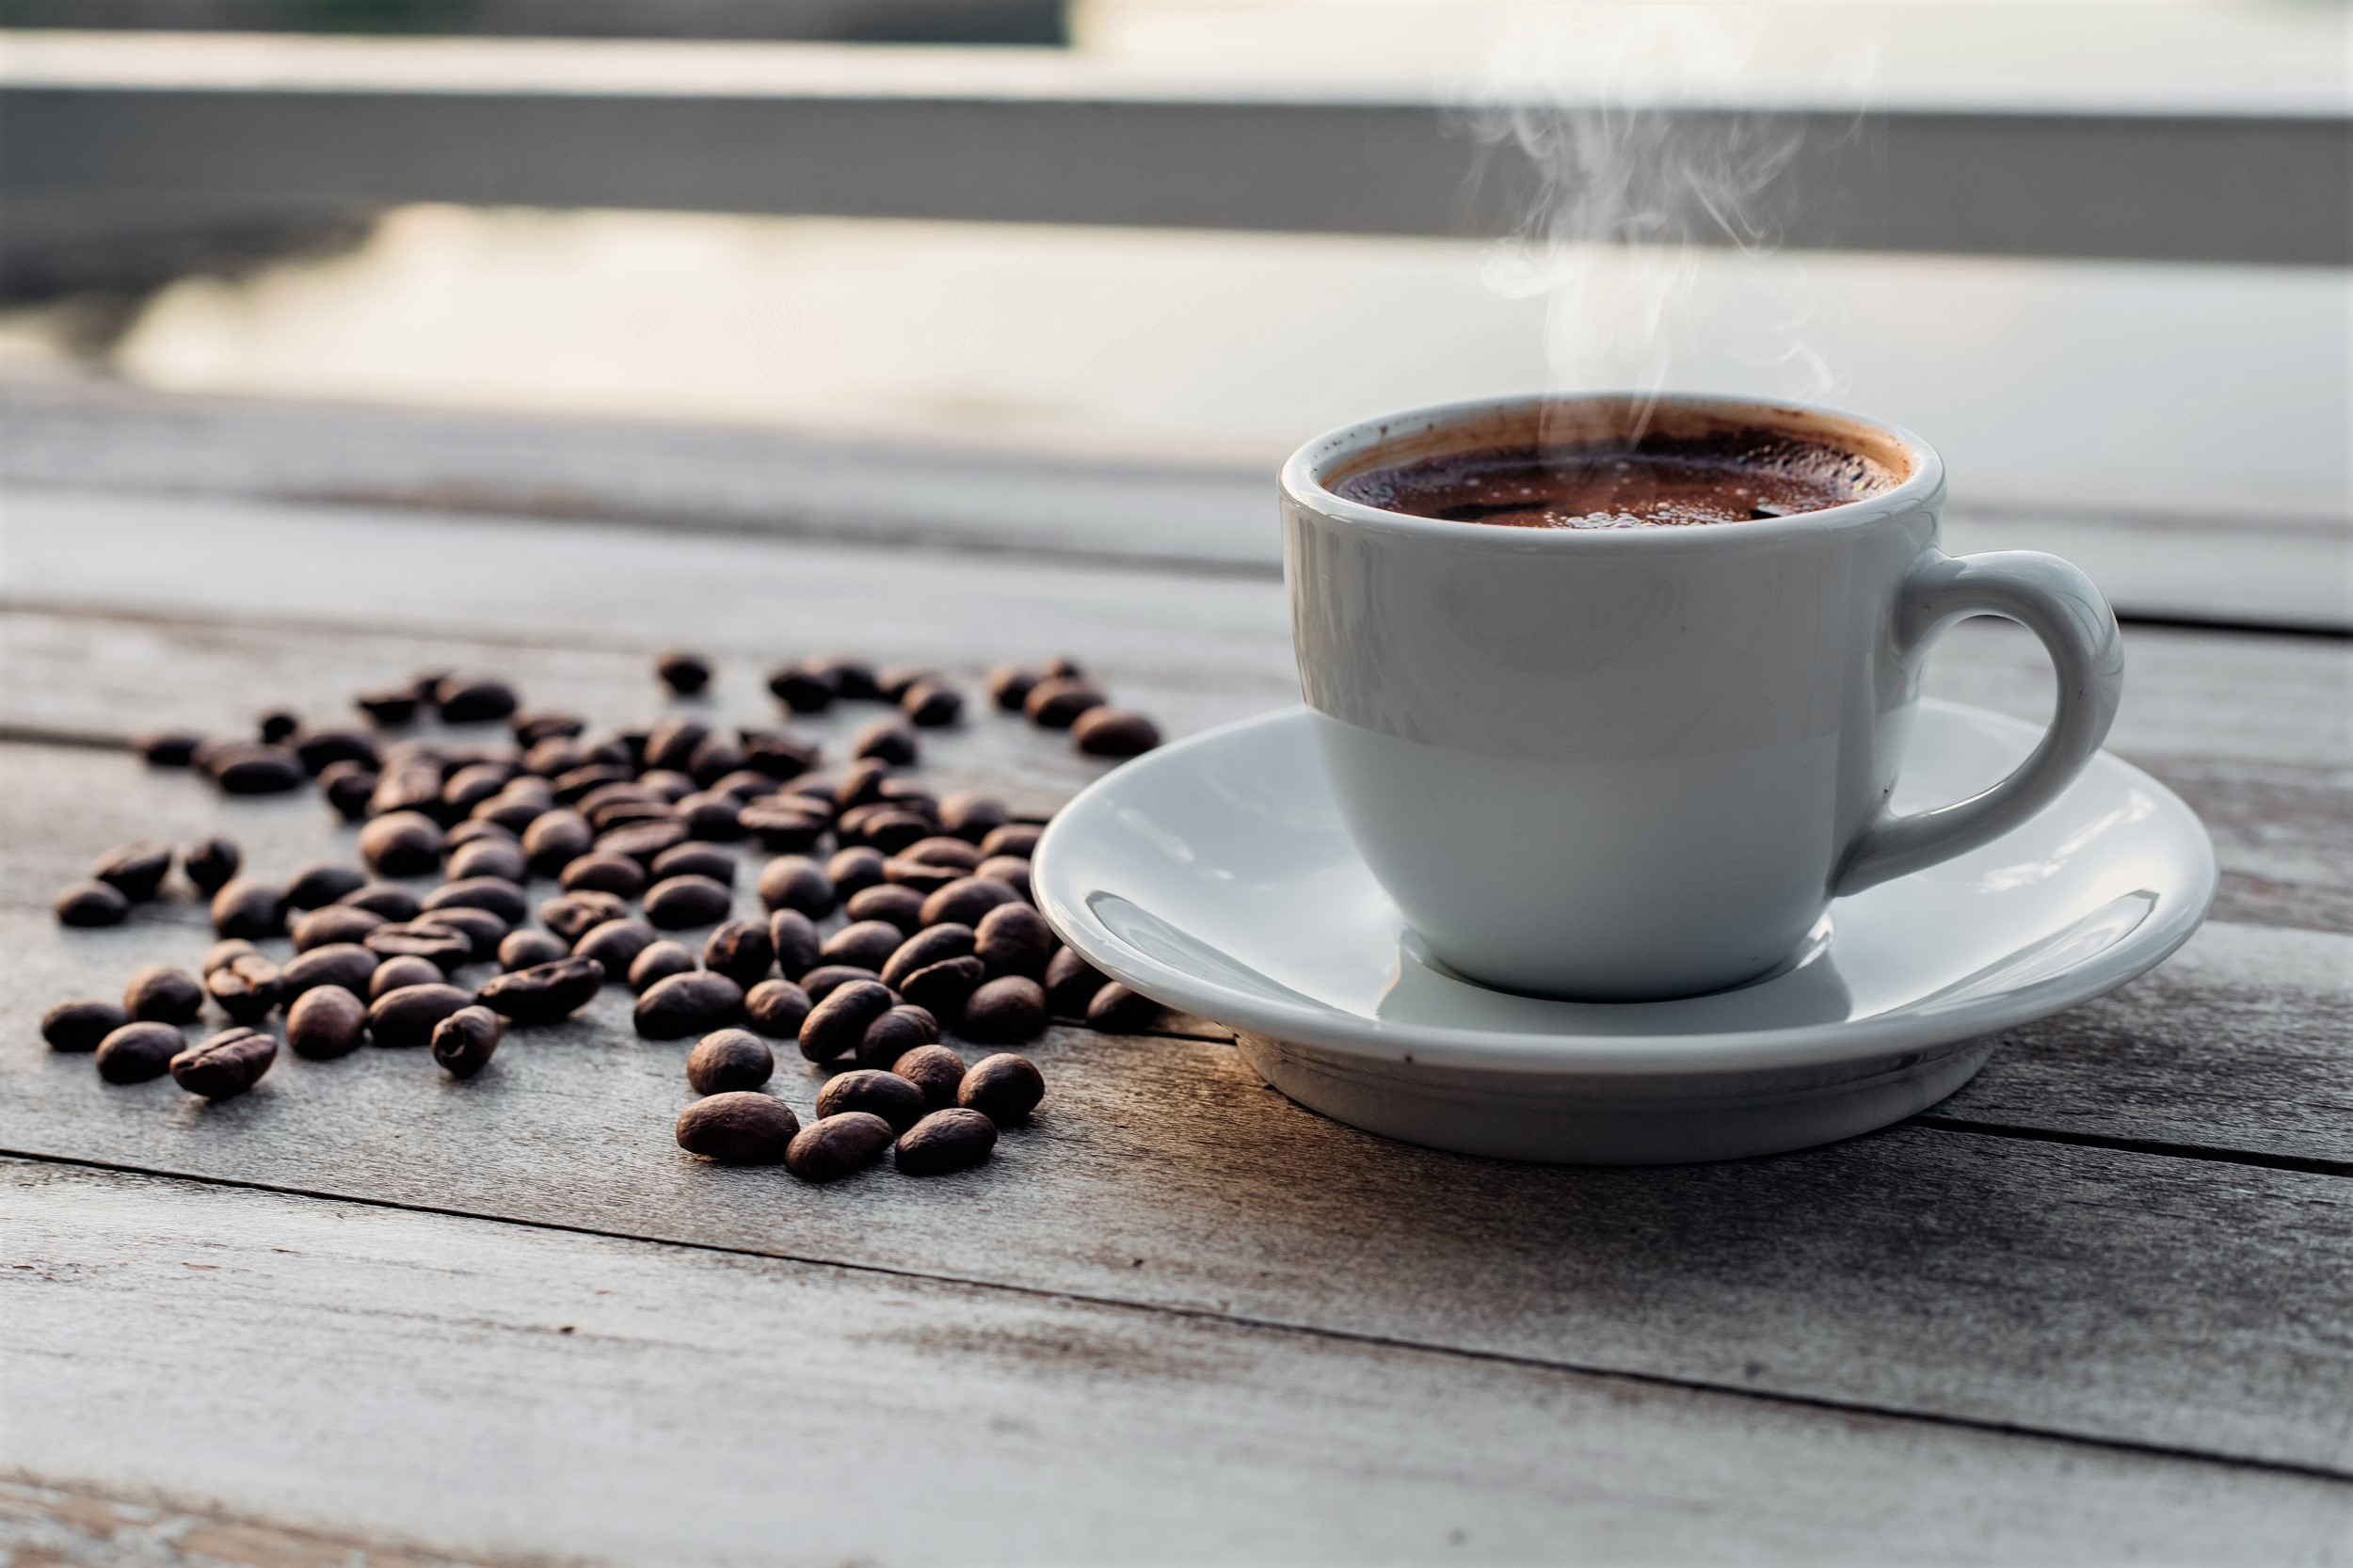 Steaming Hot Cup of Coffee on Wooden Table with Coffee Beans